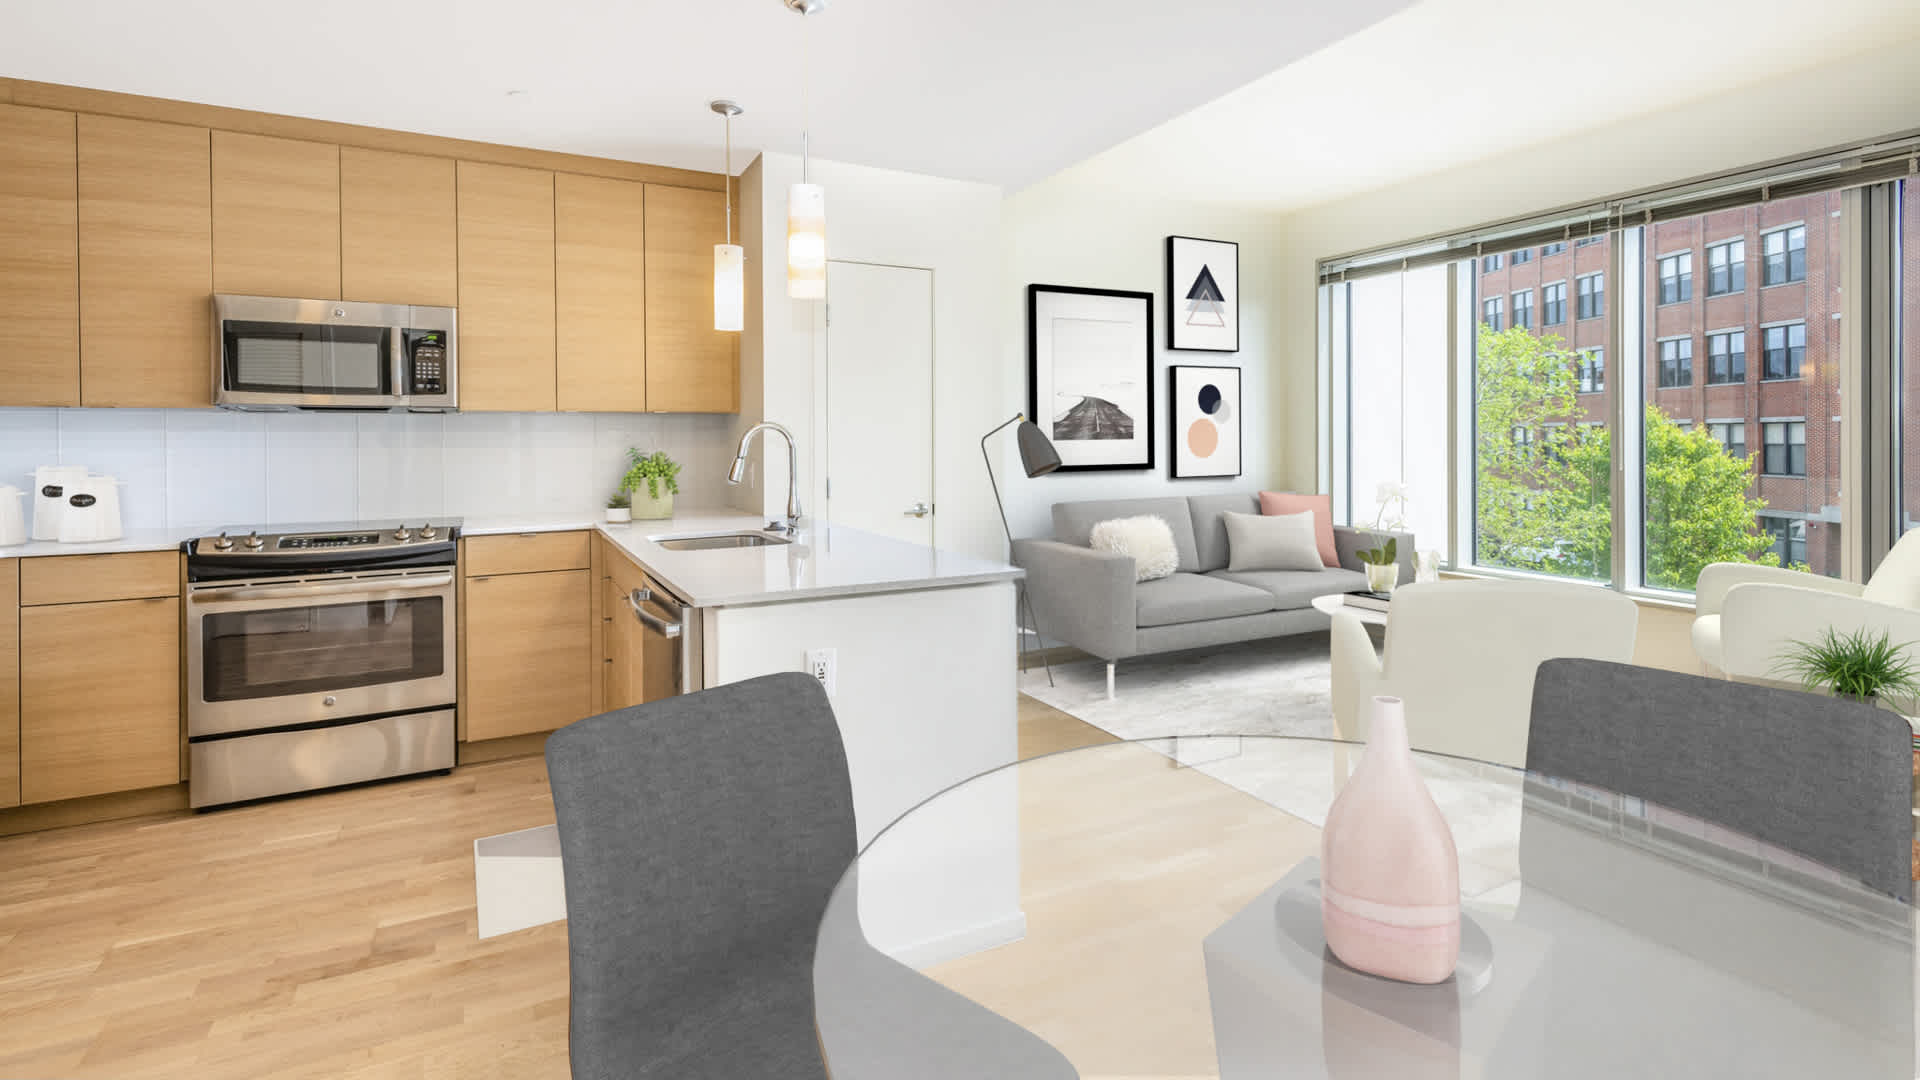 Girard apartments living room and kitchen with stainless steel appliances